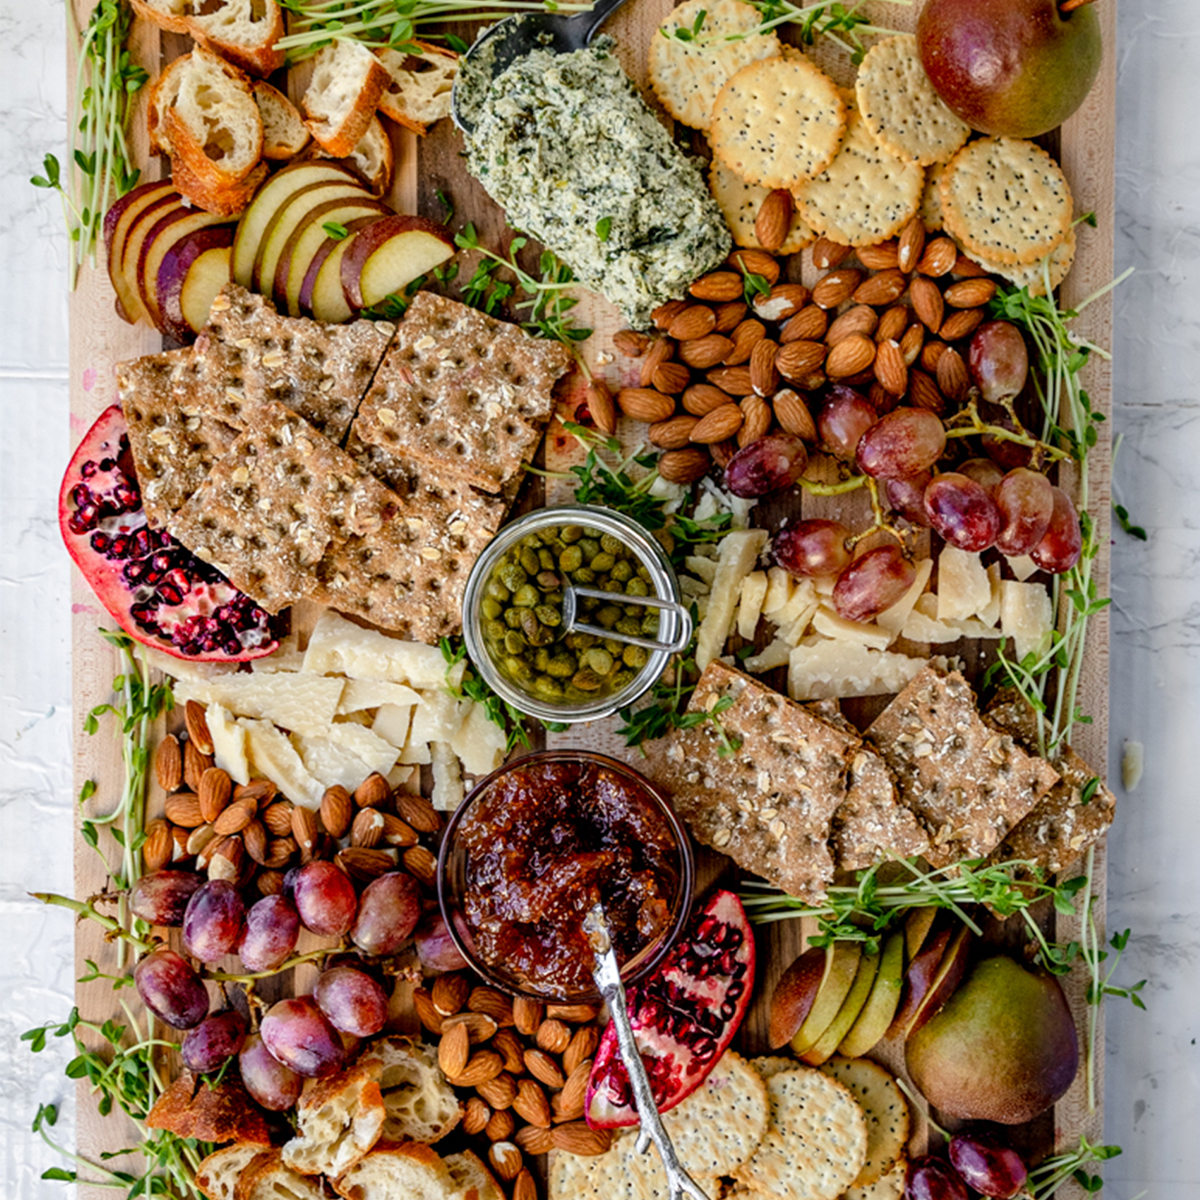 overhead shot of wooden cheese board with a variety of fruits, cheeses, and nuts in a purple green color scheme